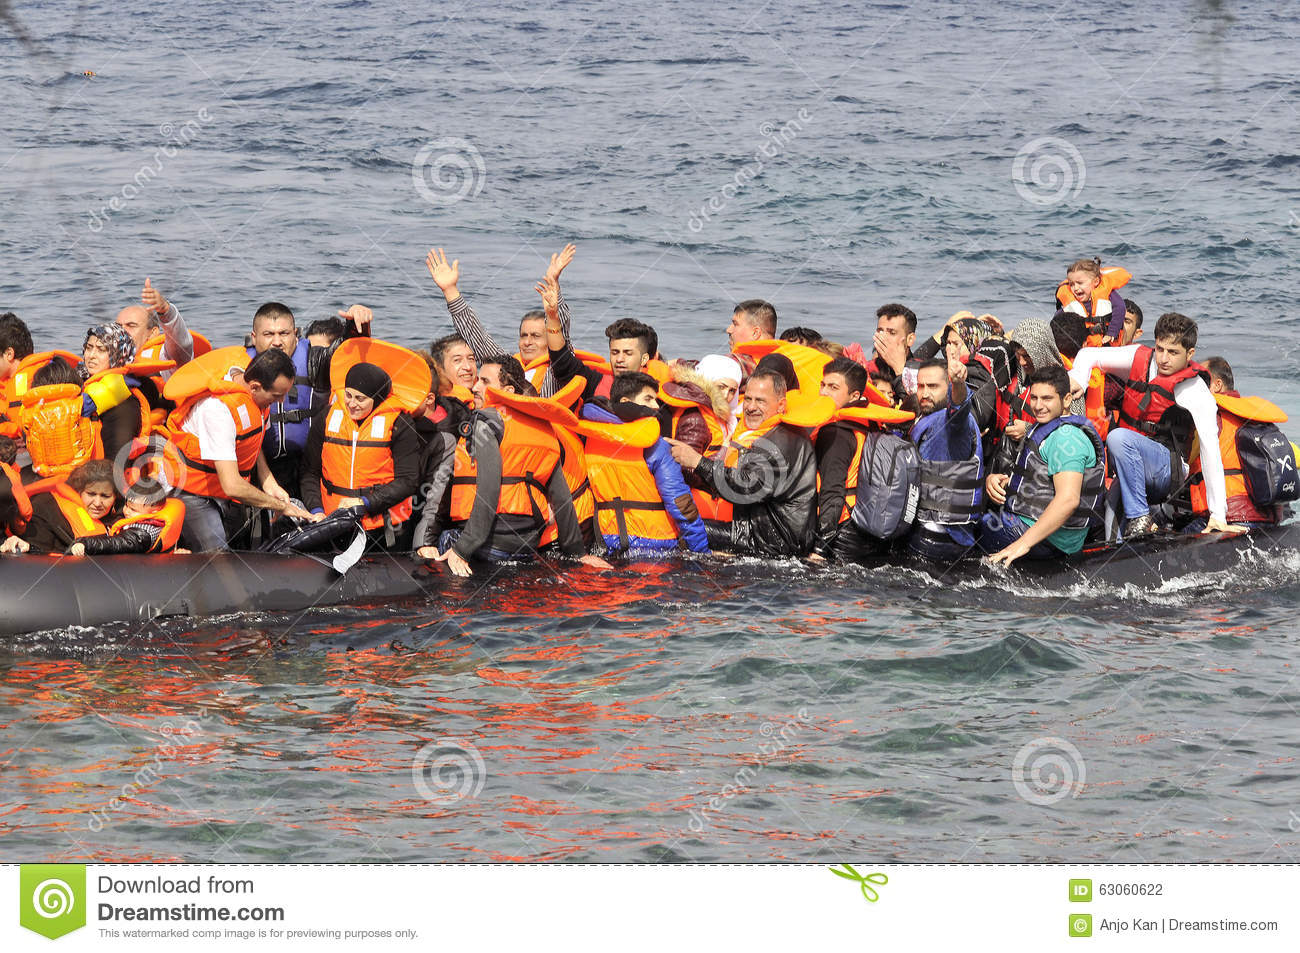 LESVOS, GREECE october 20, 2015: Refugees arriving in Greece in dingy boat from Turkey.